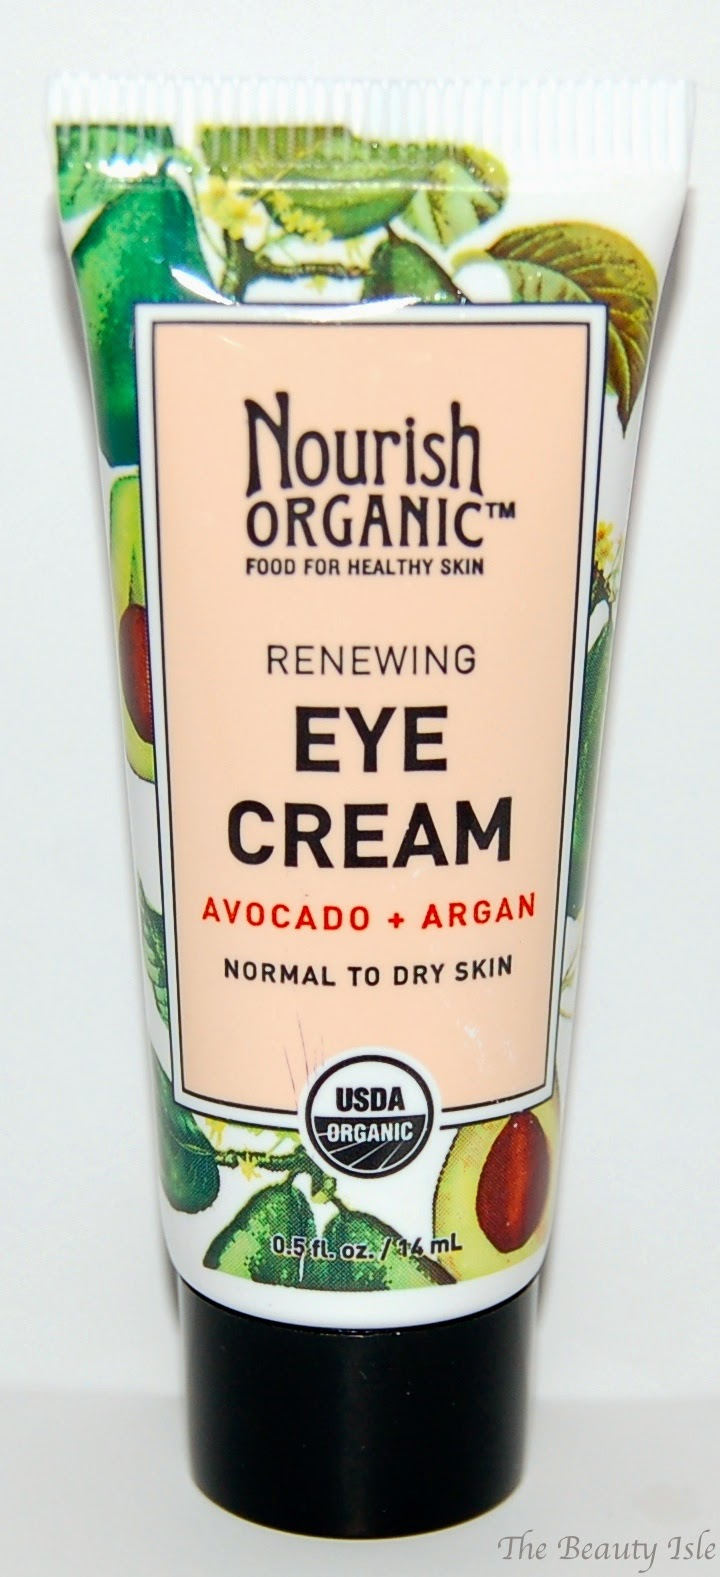 Nourish Organic Eye Cream